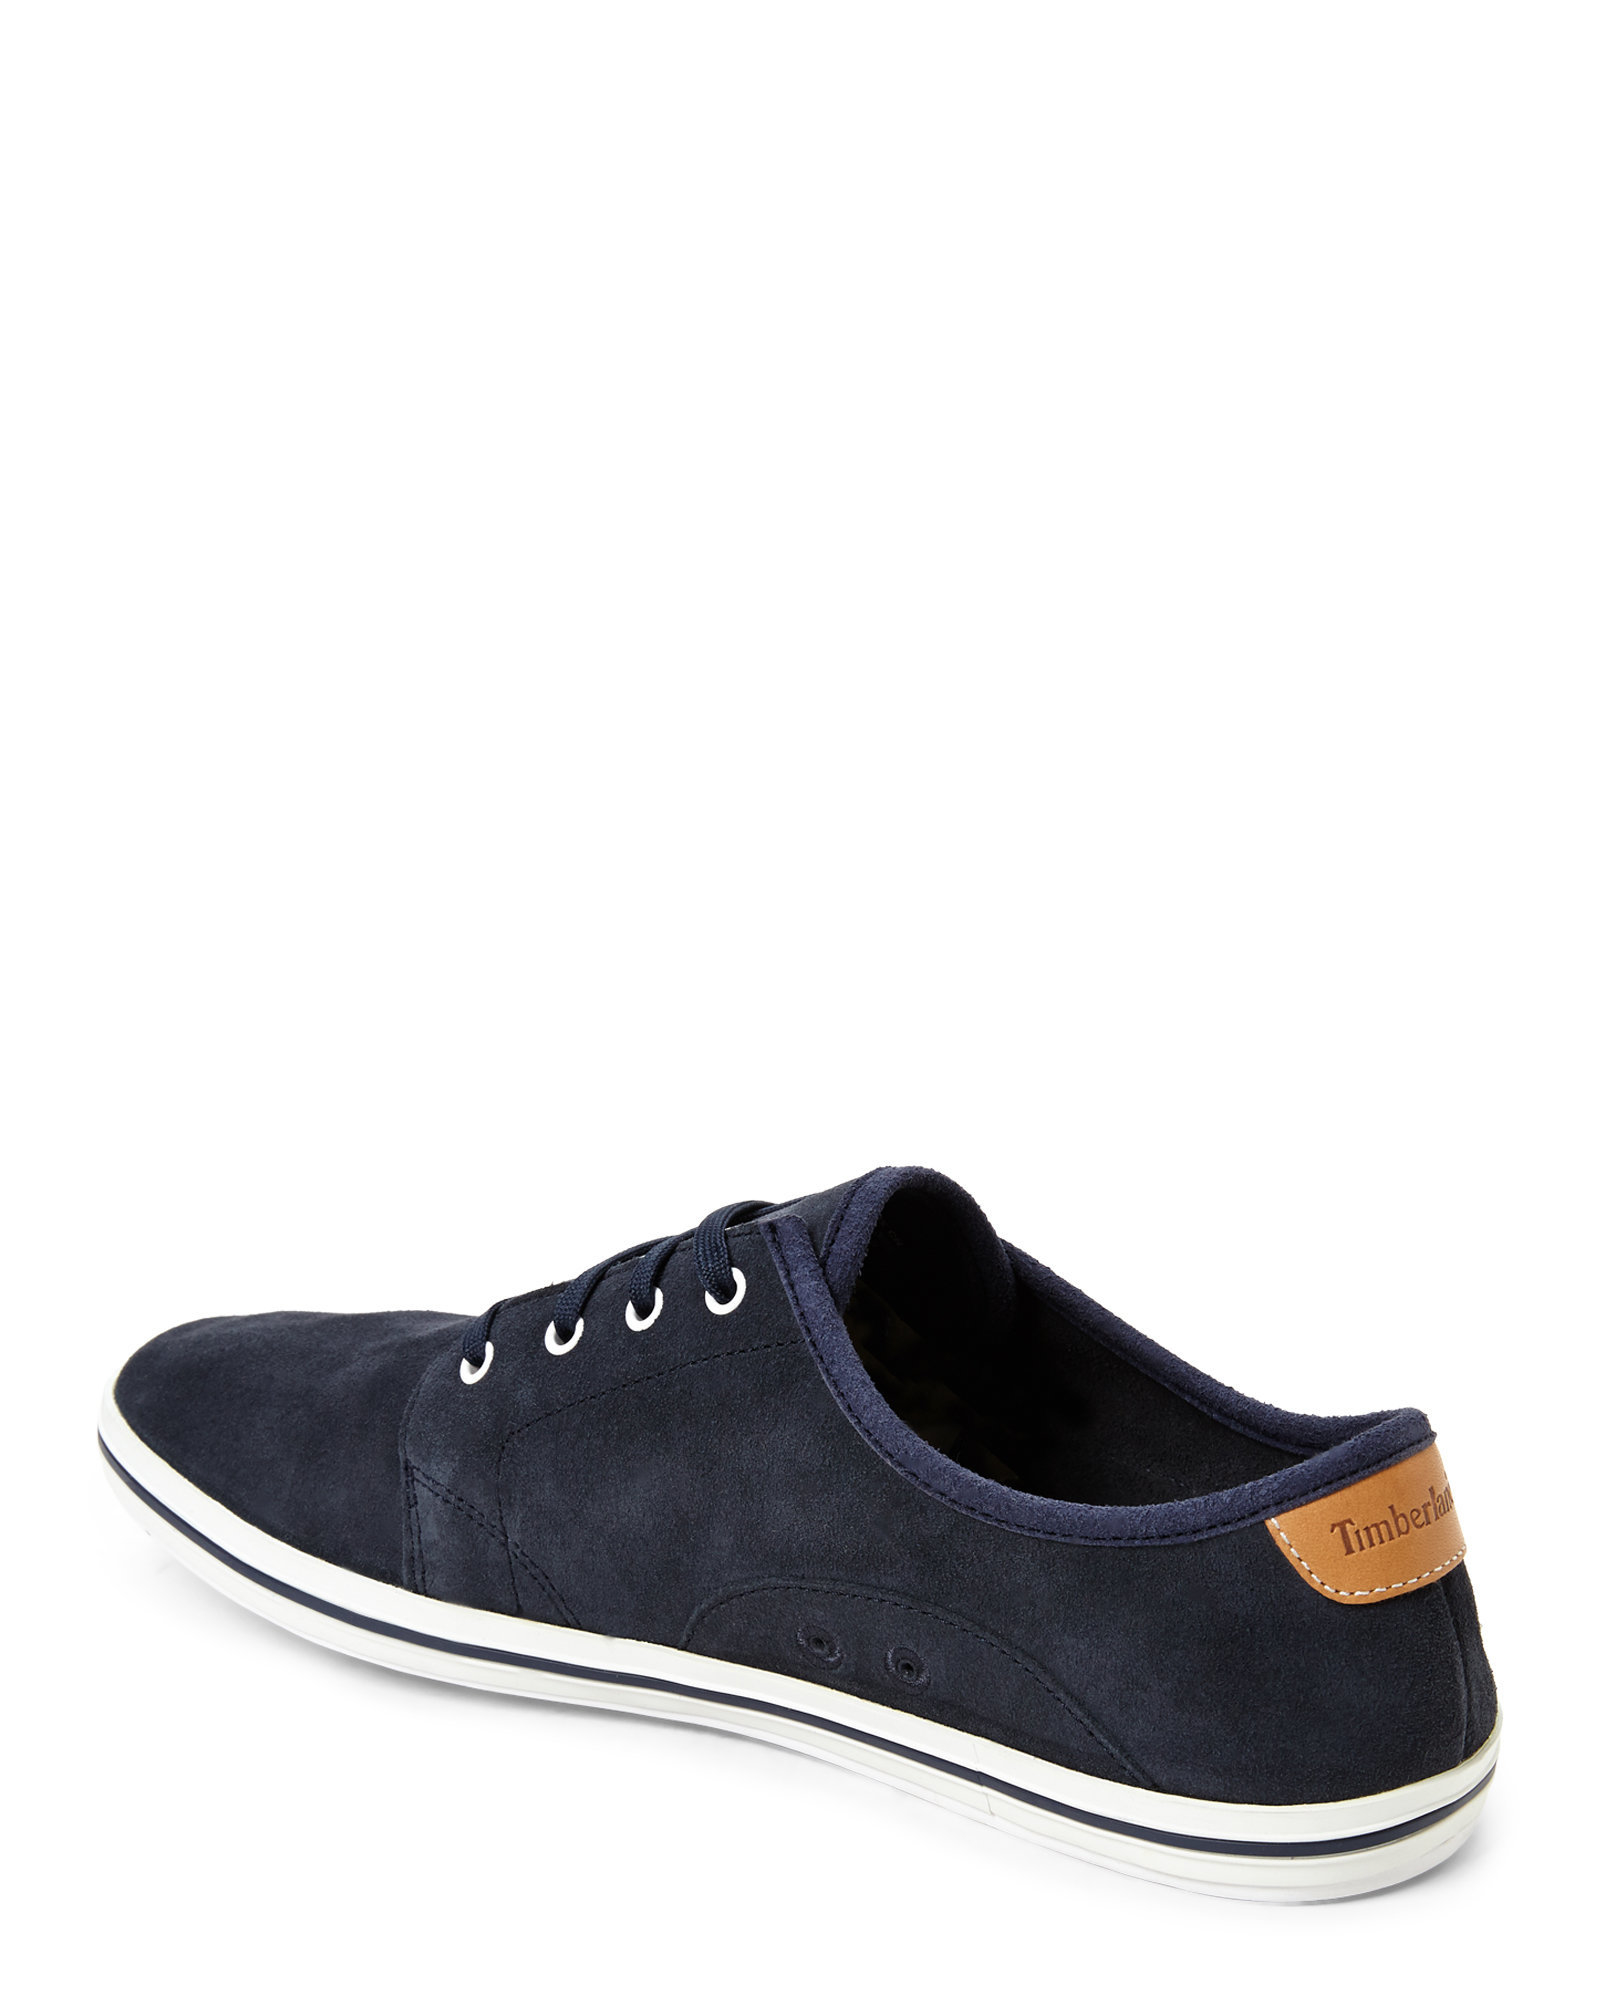 Lyst - Timberland Navy Earthkeepers Casco Bay Sneakers in Blue for Men e861e972d